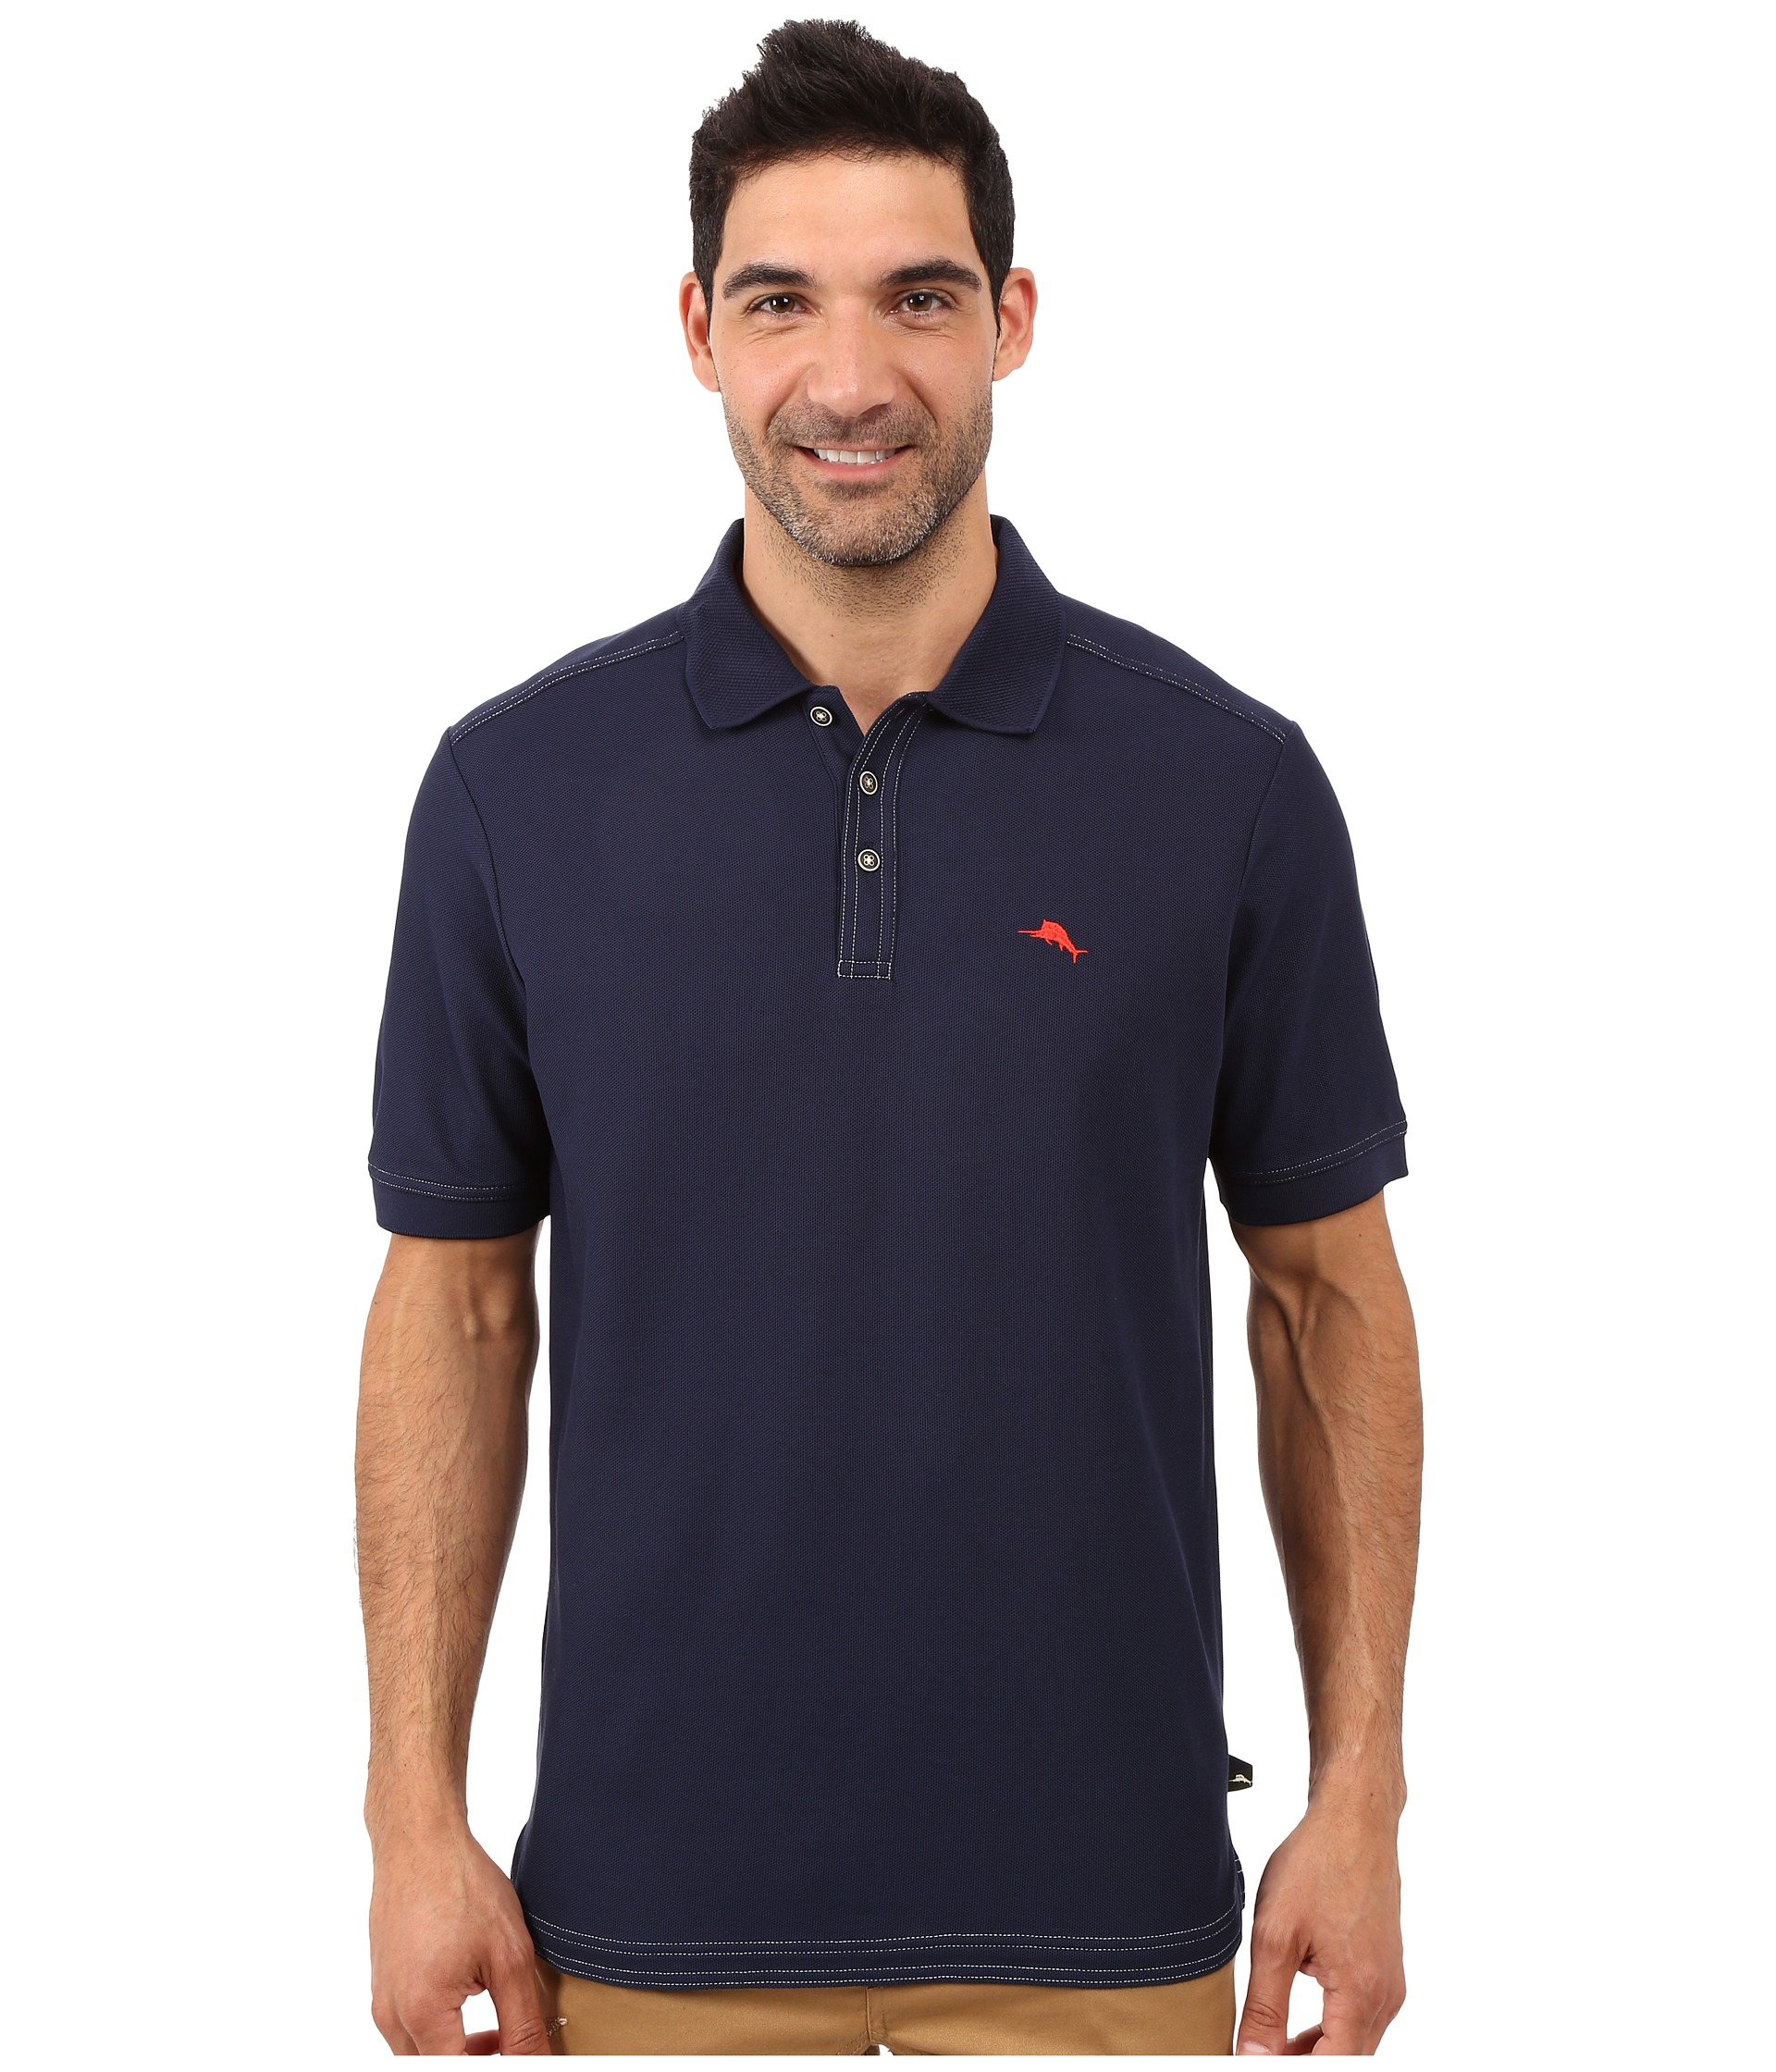 Tommy bahama the emfielder polo shirt blue note zappos for Tommy bahama polo shirts on sale